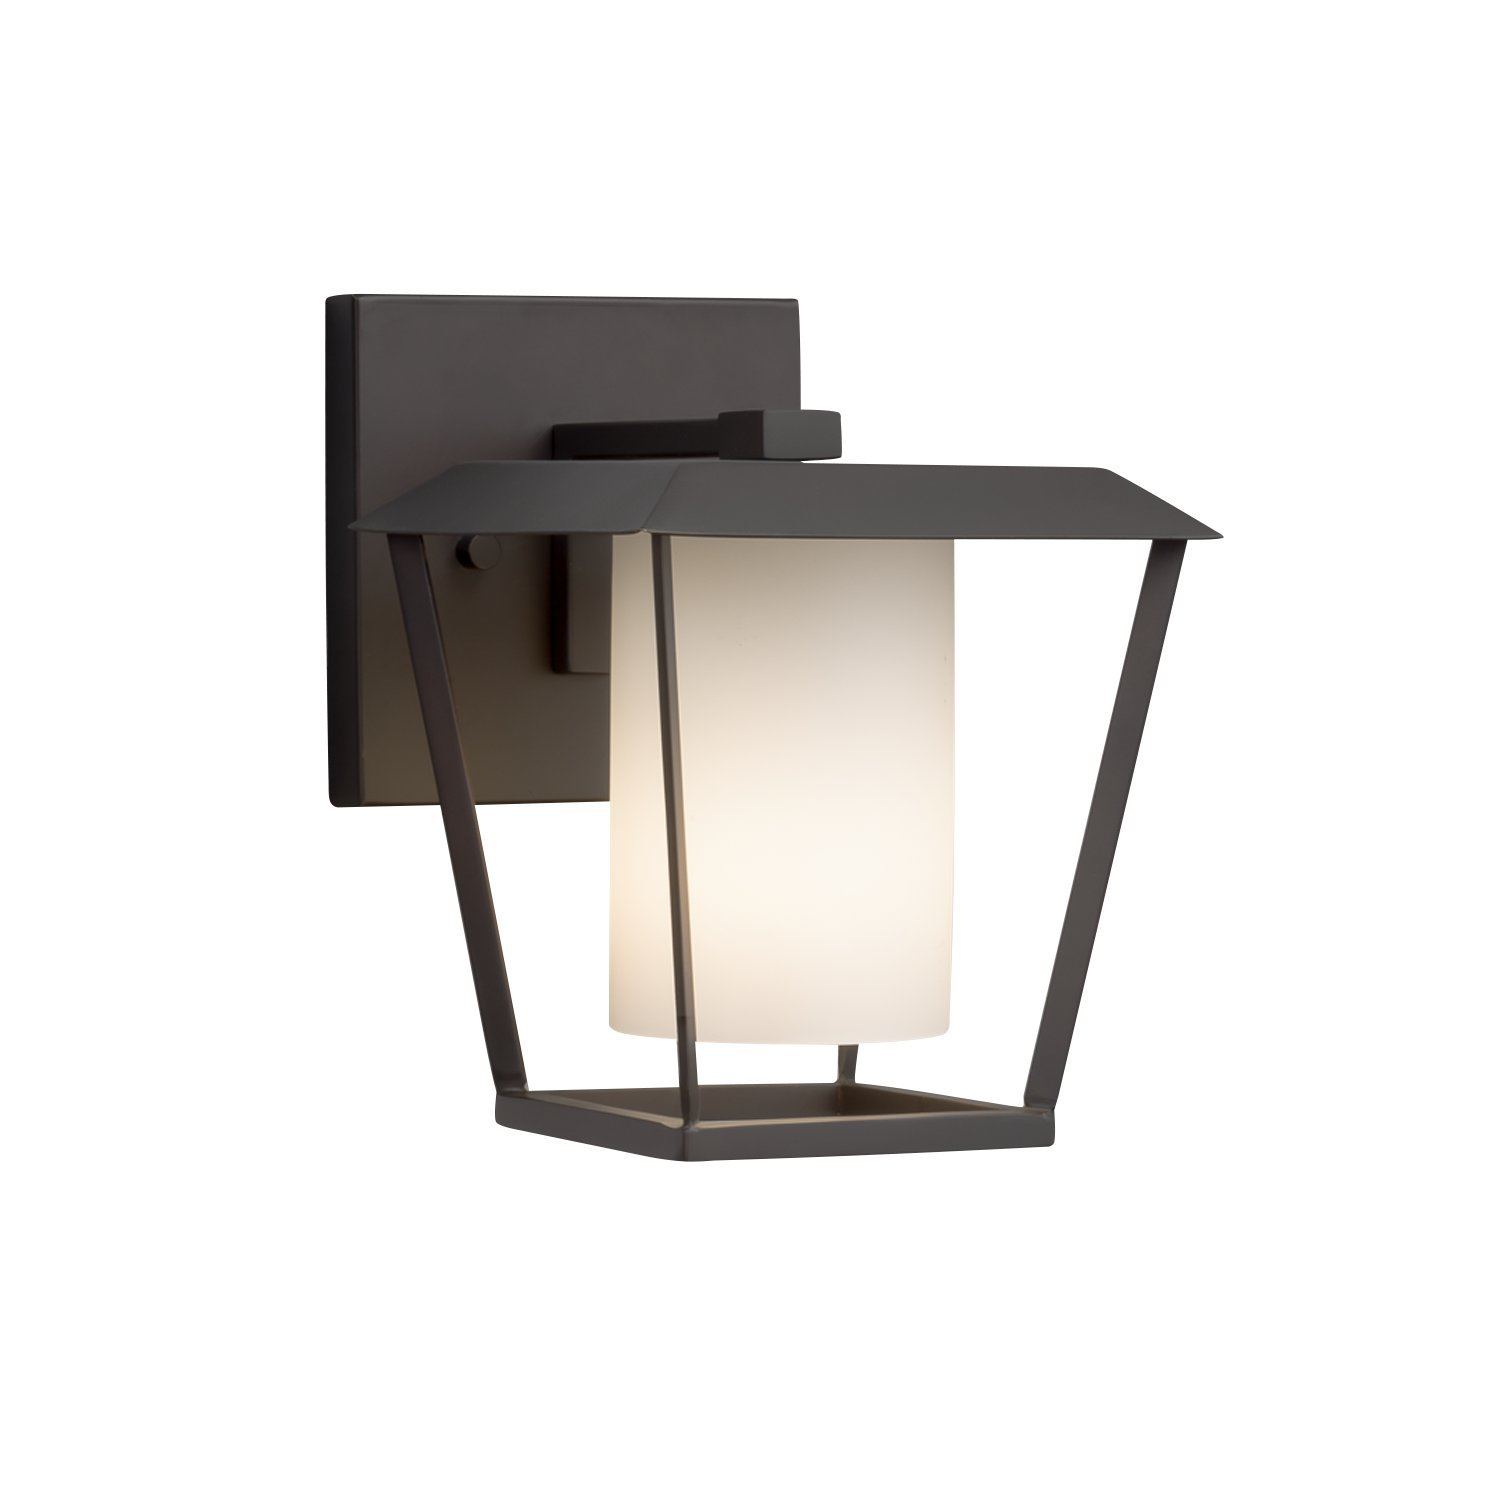 Matte Black Finish Cylinder with Flat Rim Artisan Glass Shade in Opal LED Fusion Patina Small 1-Light Outdoor Wall Sconce